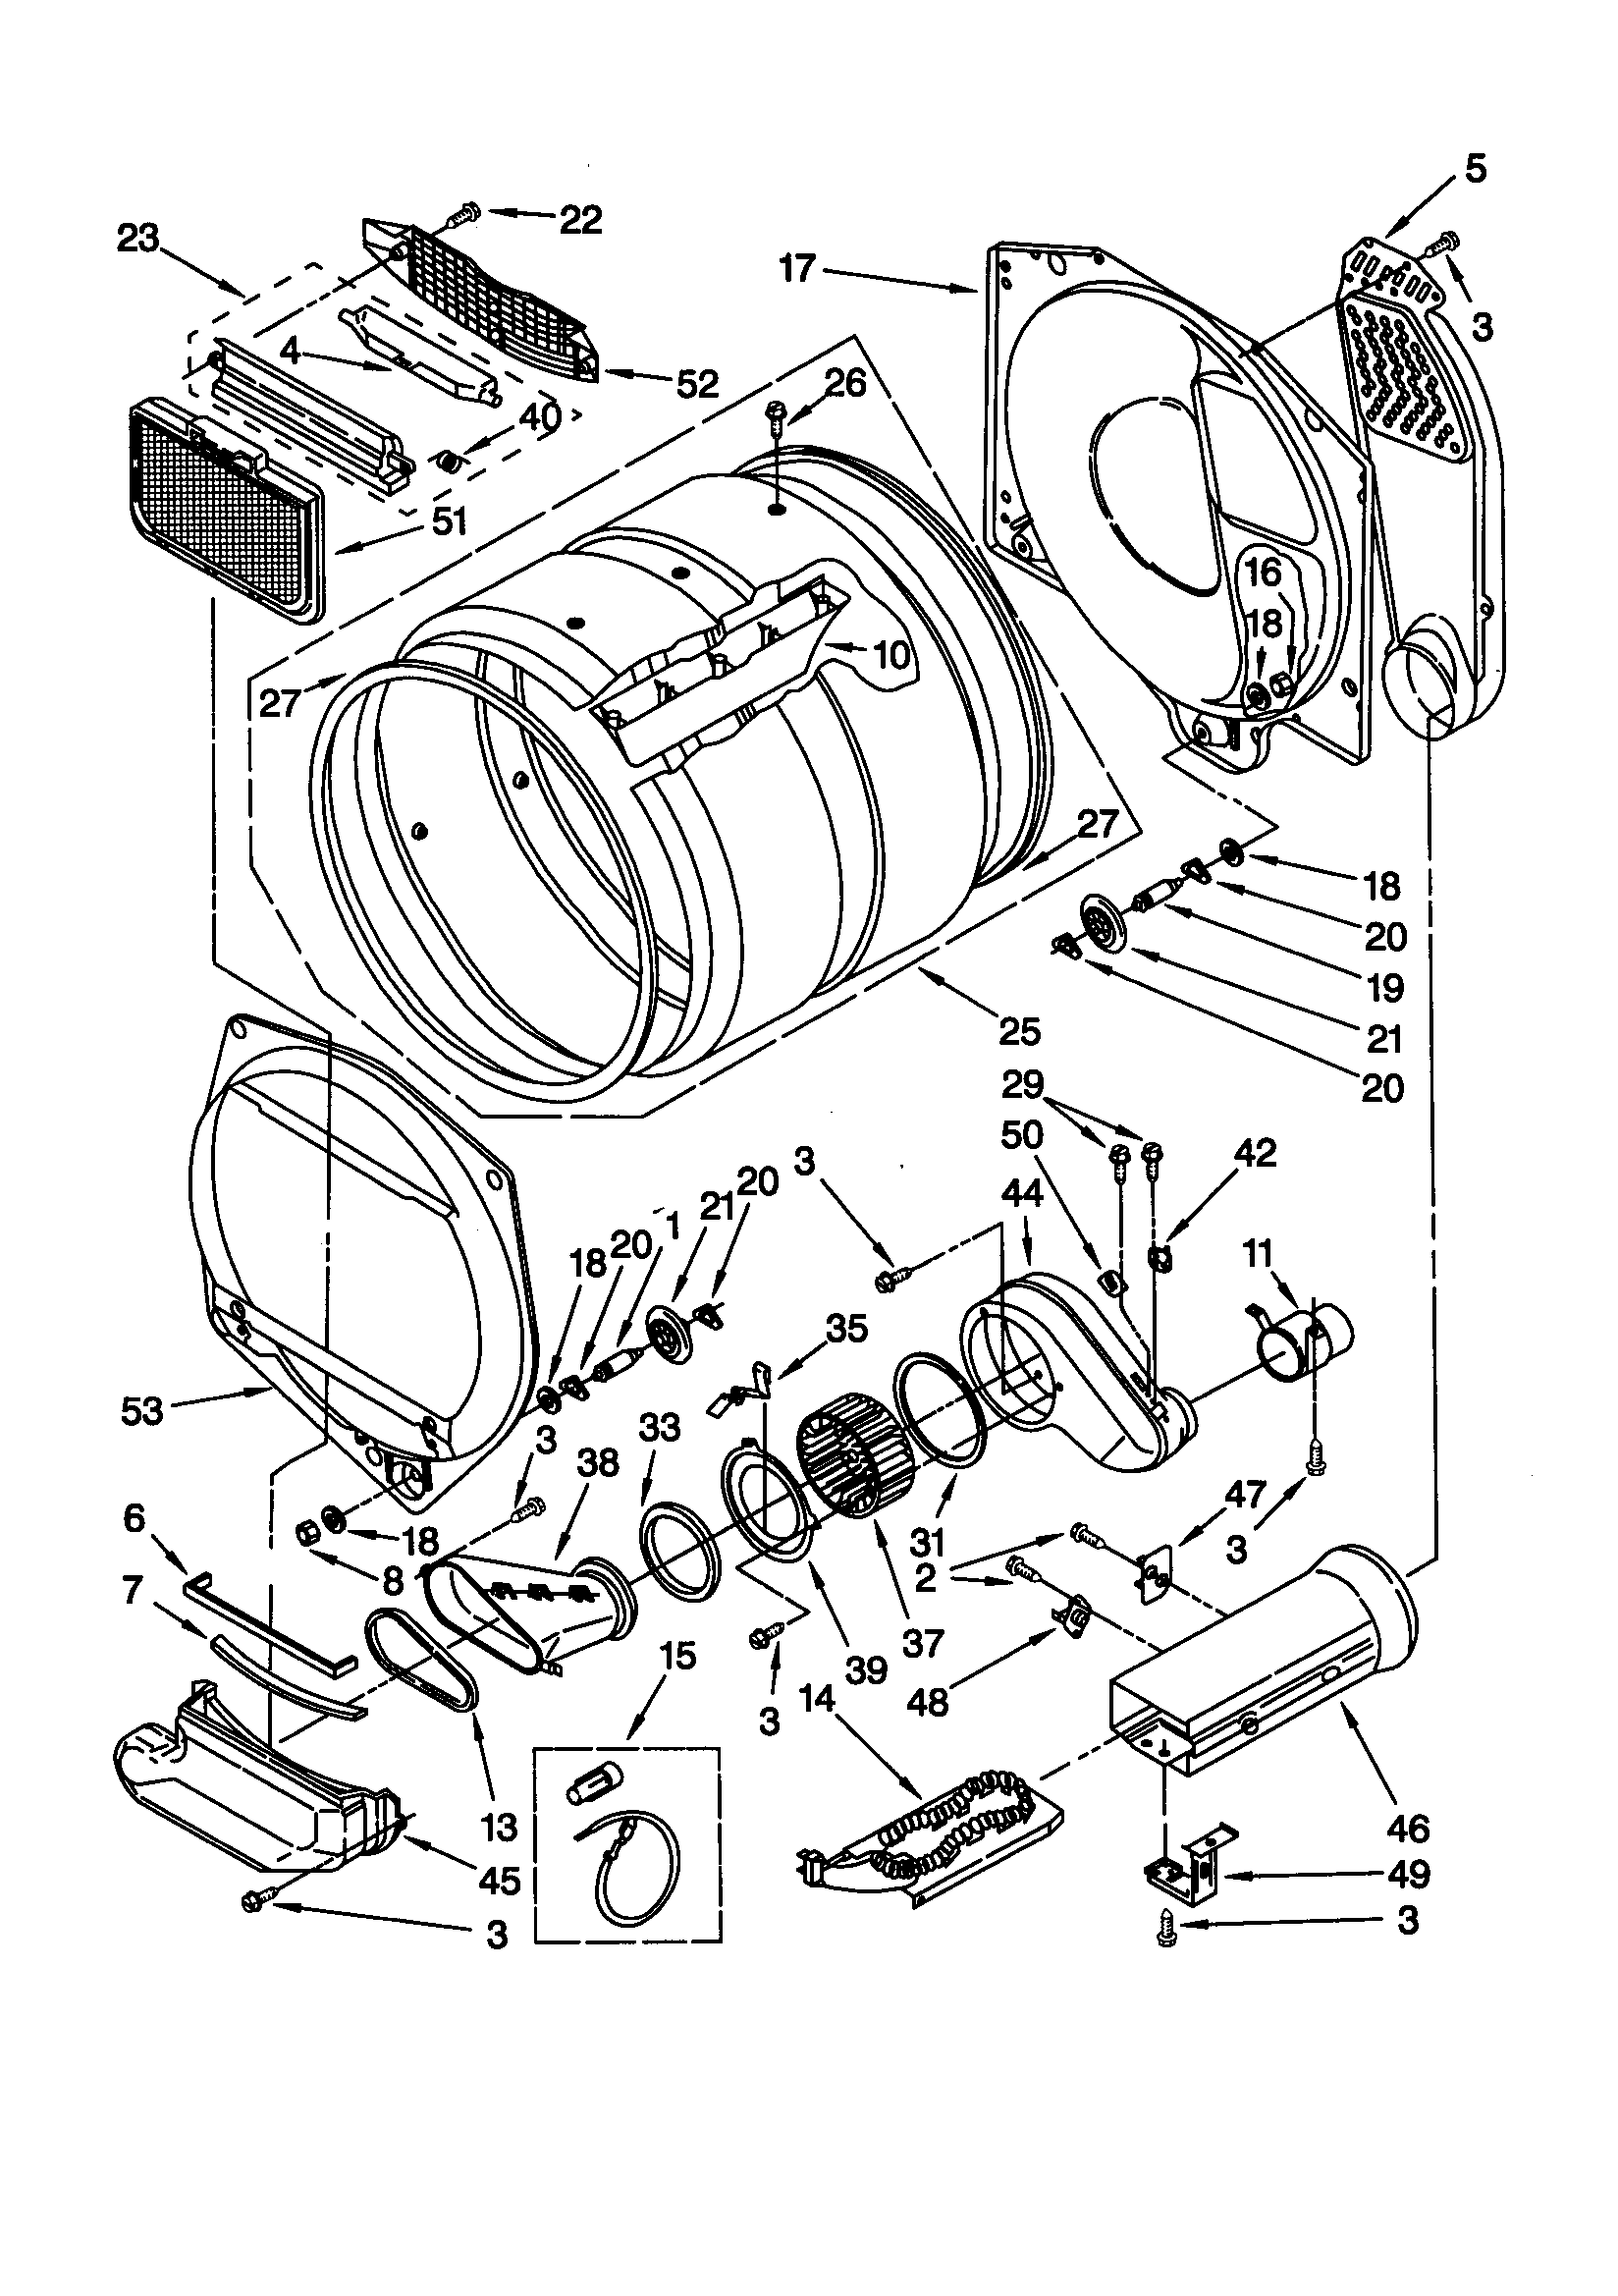 whirlpool duet dryer parts diagram simple 110 wiring diagrams bulkhead and list for model lte6234dq1